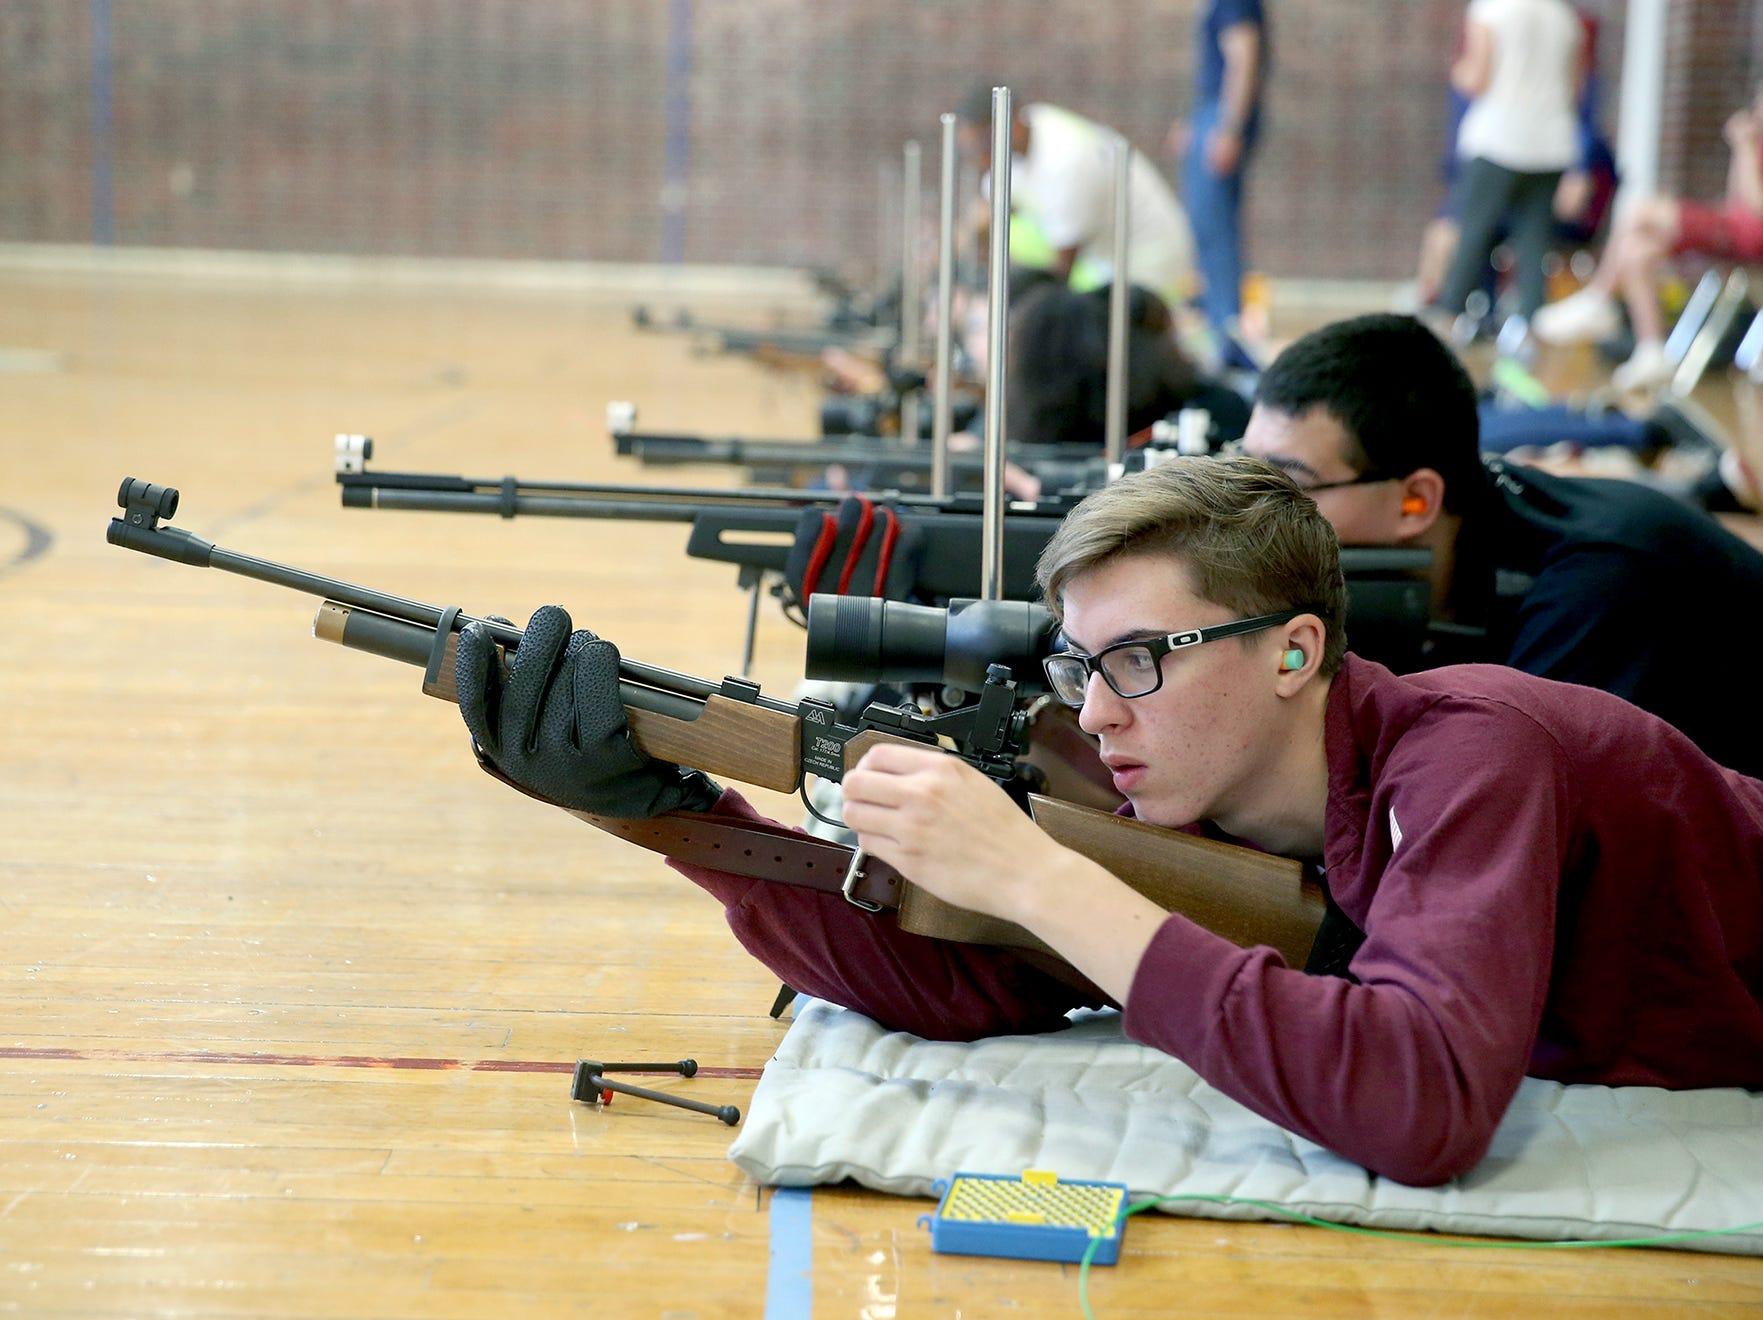 SK NJROTC member Jacob Saurer, 16, readies his rifle aim at the South Kitsap High School NJROTC Wolf Battalion Rifle Camp runs from August 8-10, at the National Guard Armory in Port Orchard.The camp teaches rifle safety, and shooting technics.